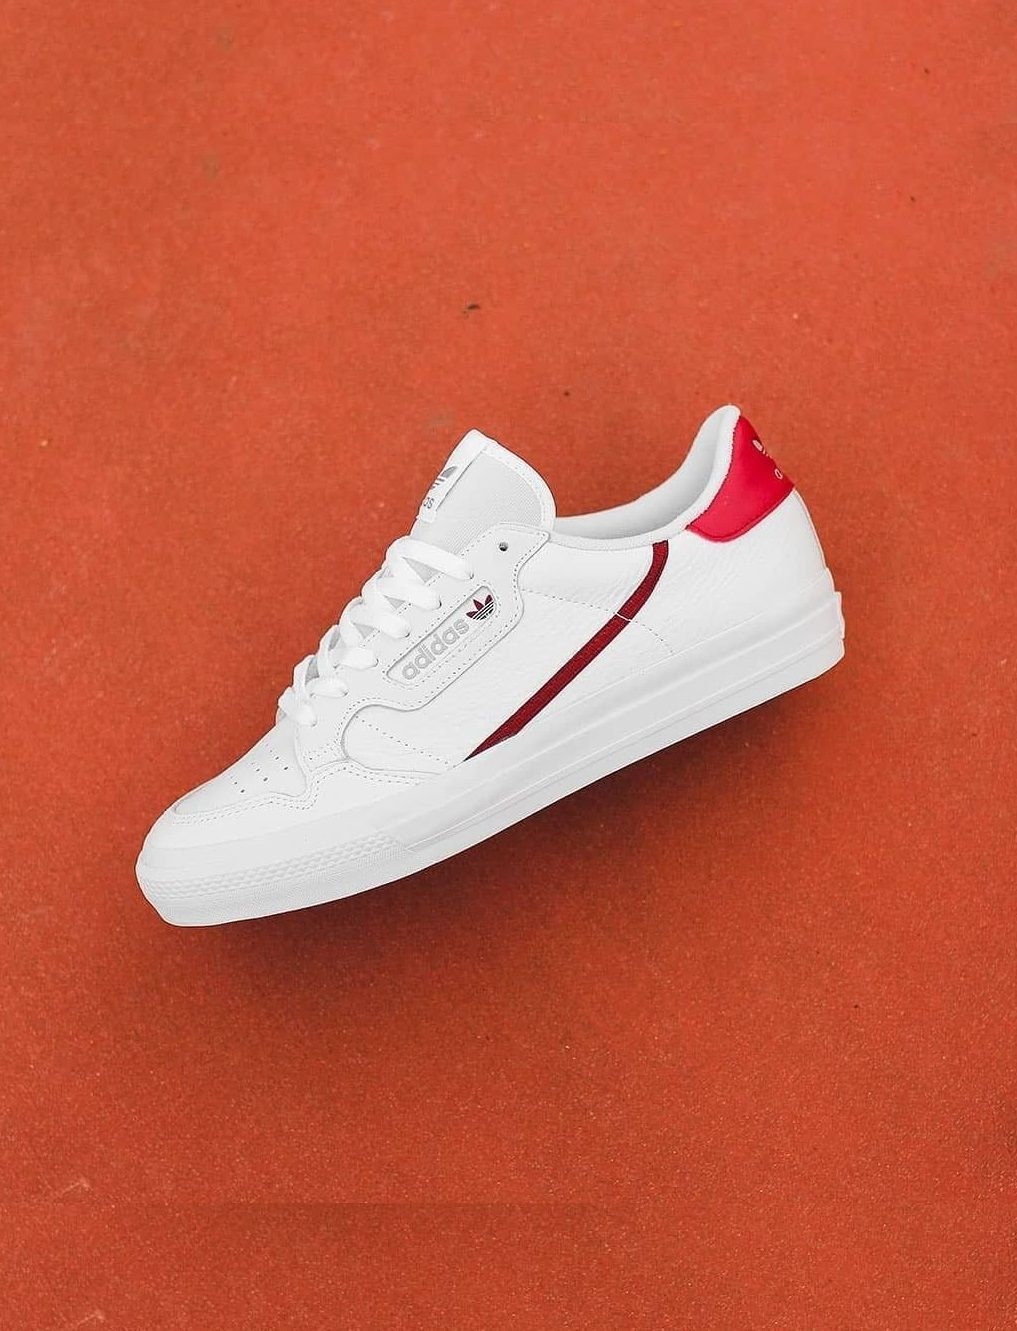 Originals Vulc in Continental adidas nike 2019Sneakers O8wkX0nP